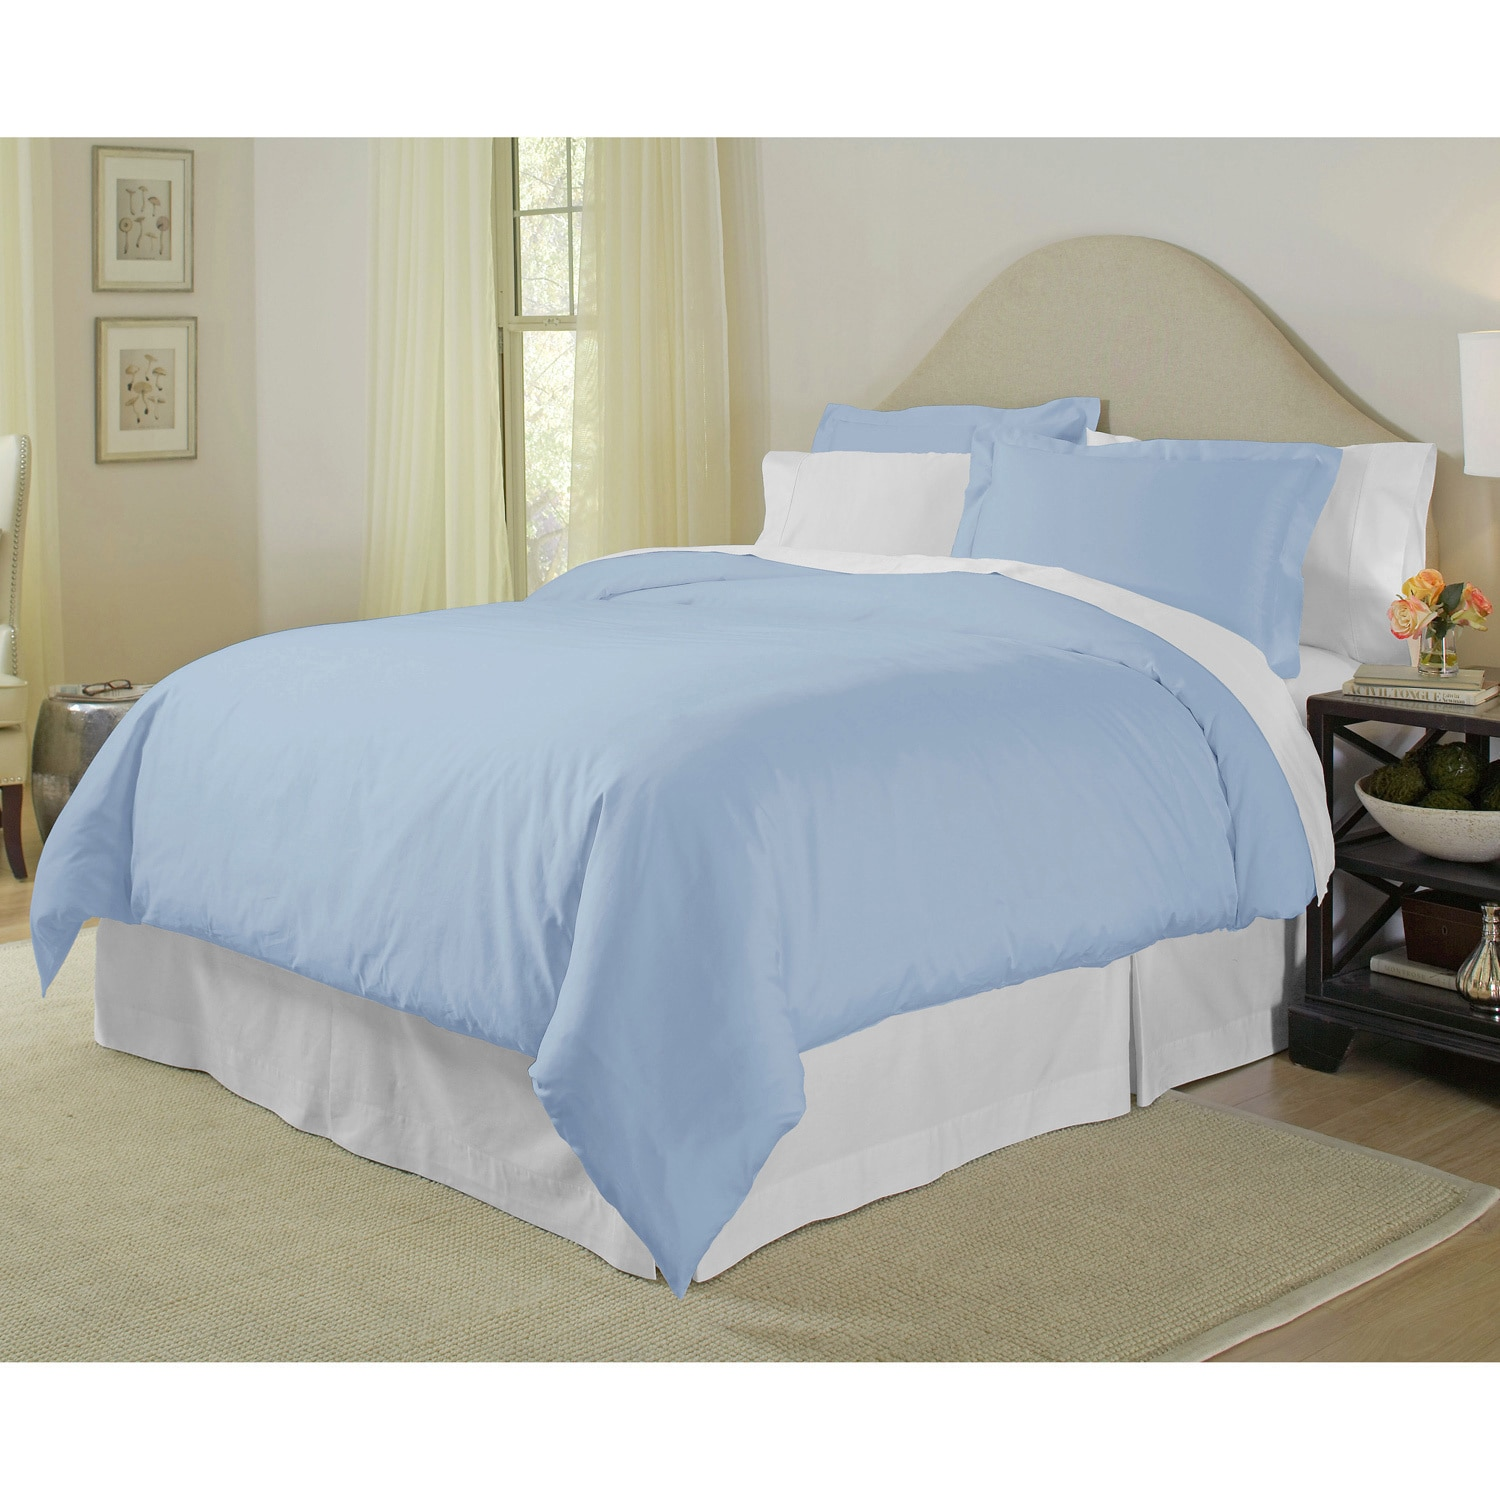 cc3902e595 Shop Pointehaven Pima Cotton 400 Thread Count 3-piece Duvet Cover Set -  Free Shipping Today - Overstock - 4509547